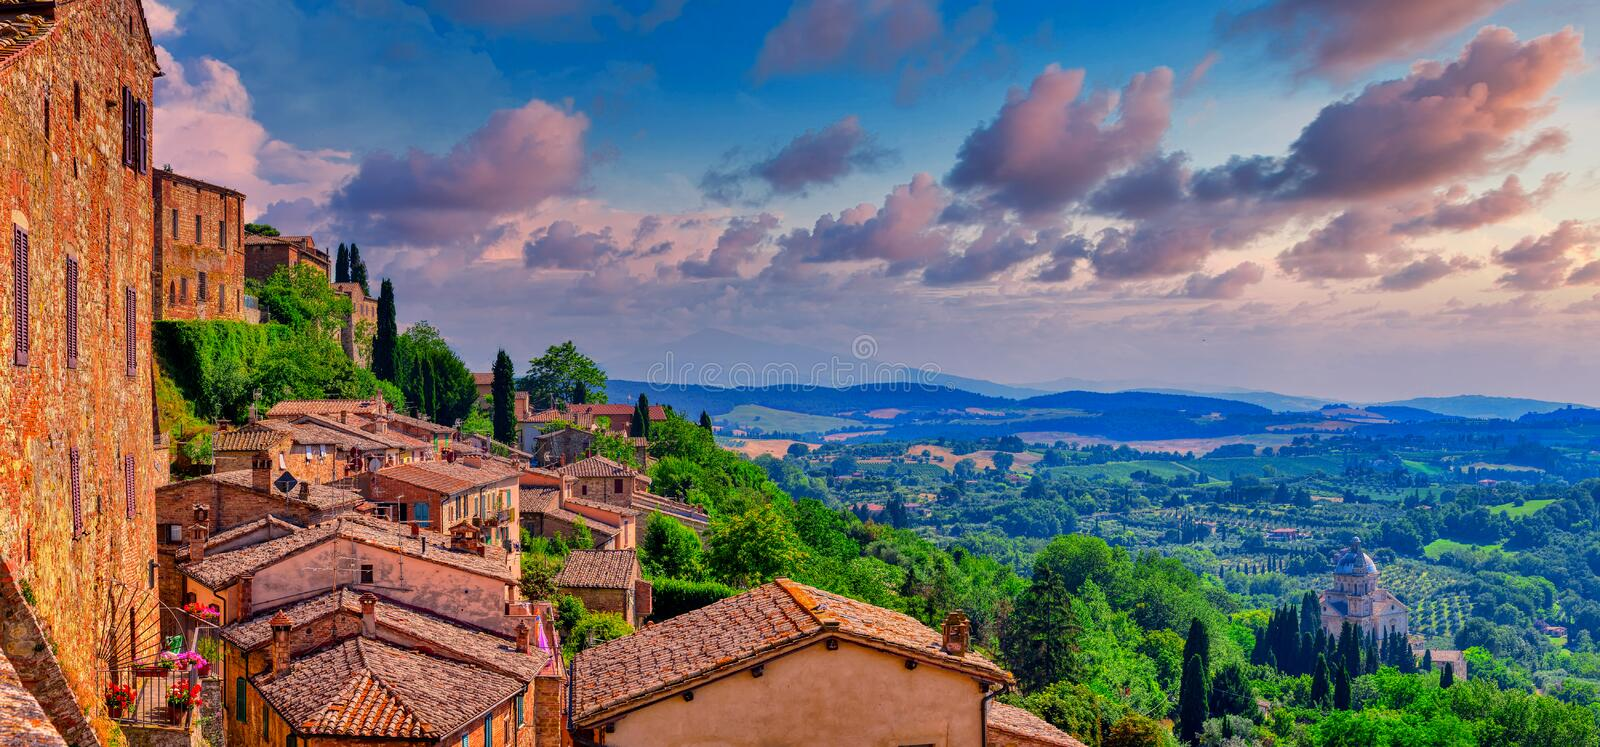 Montepulciano town and surrounding landscape in Val d`Orcia region of Tuscany, Italy royalty free stock image